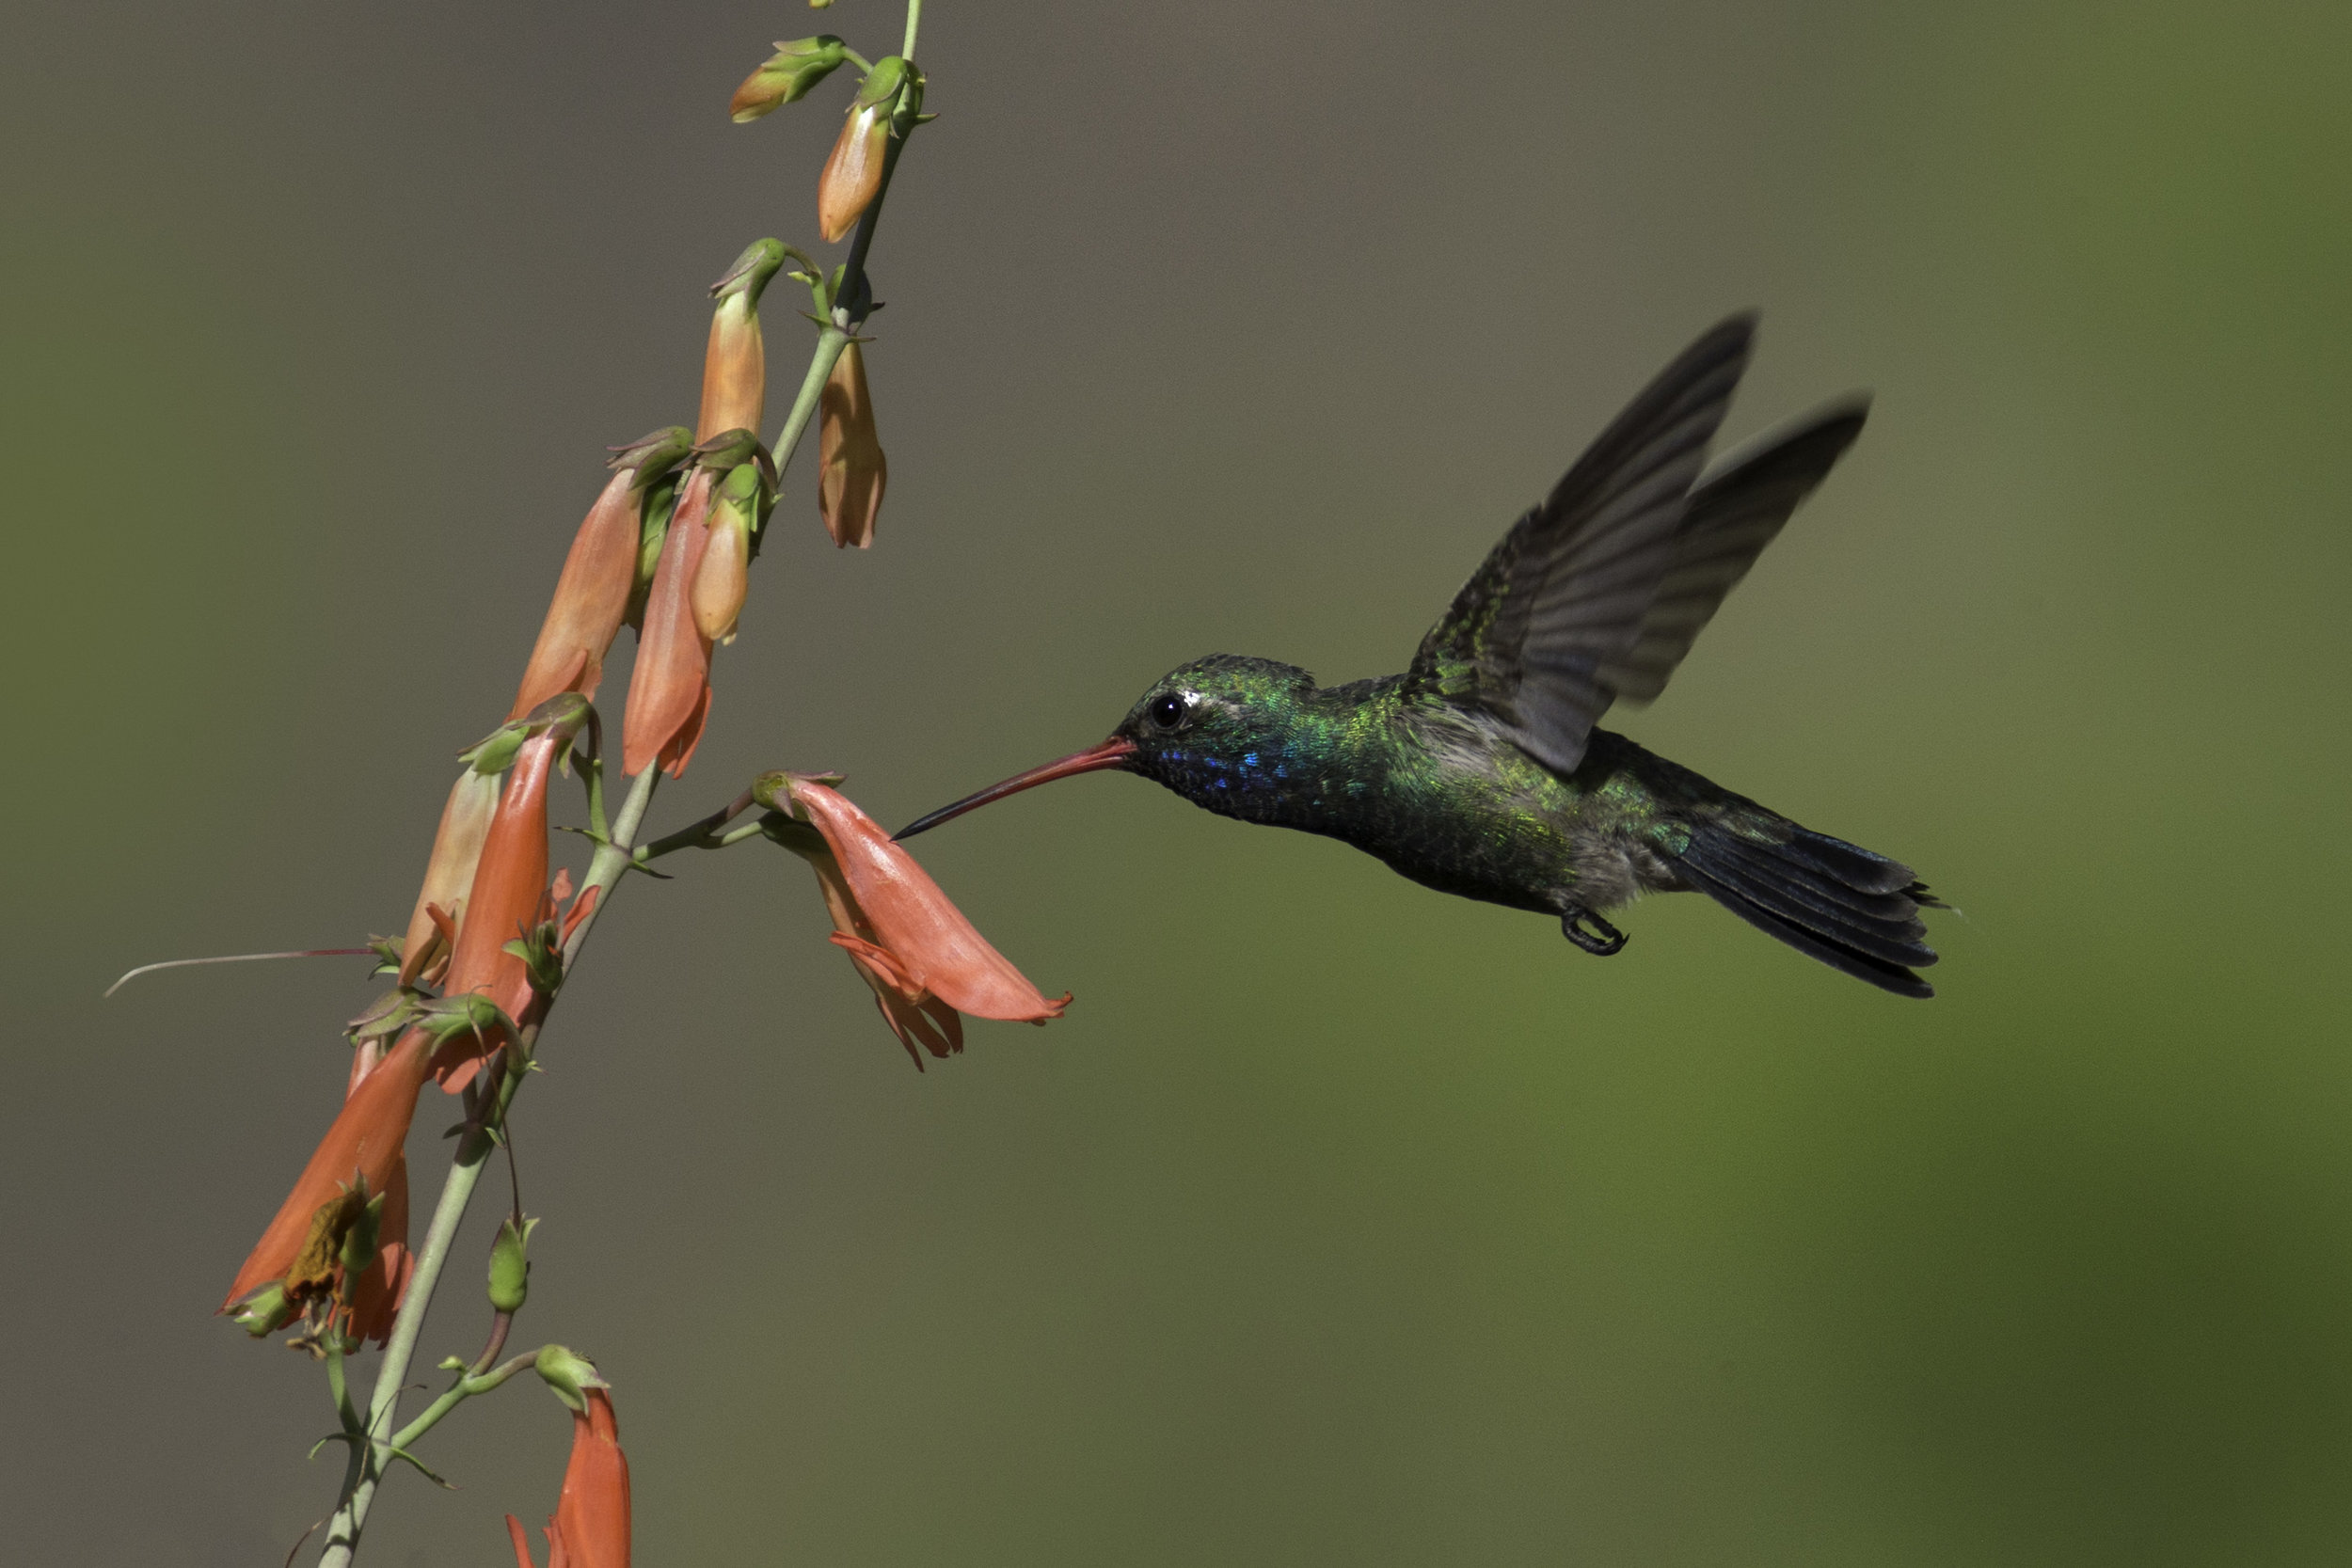 broad-billed_hummingbird_AE2R8706-Edit.jpg